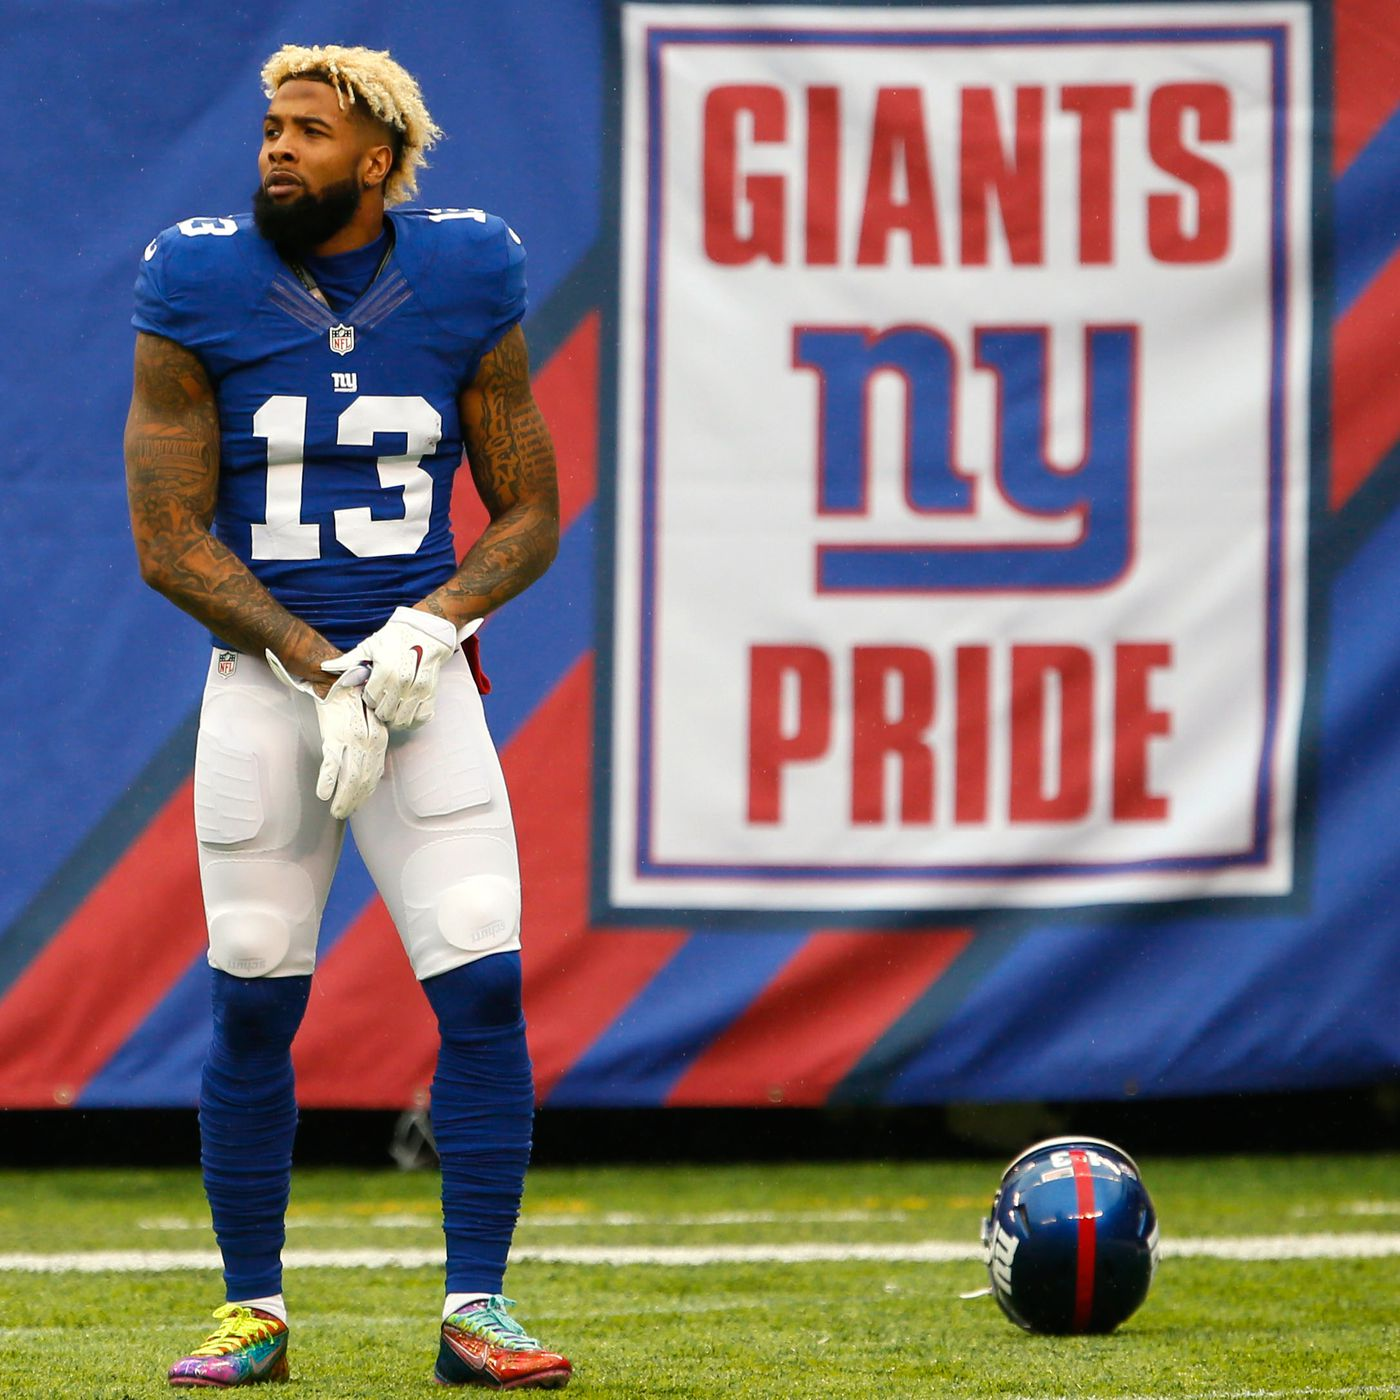 63ec1a3ff Odell Beckham Jr. deserved a mega contract. The Giants made it happen. -  SBNation.com